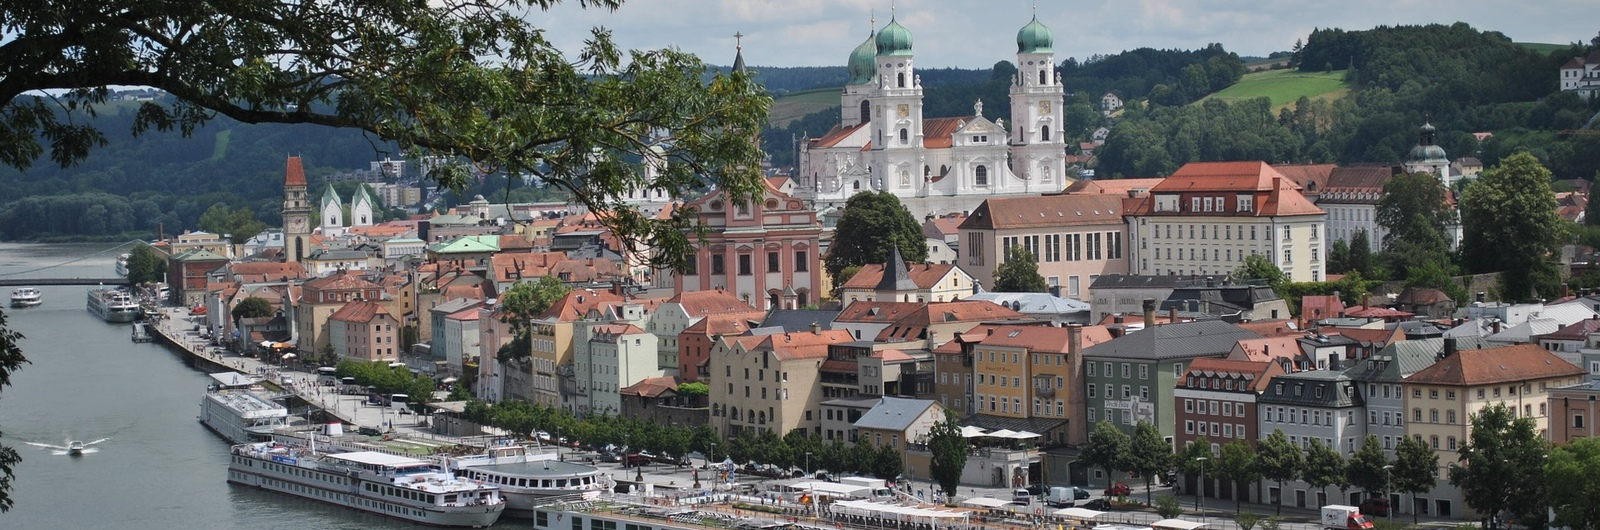 passau city header